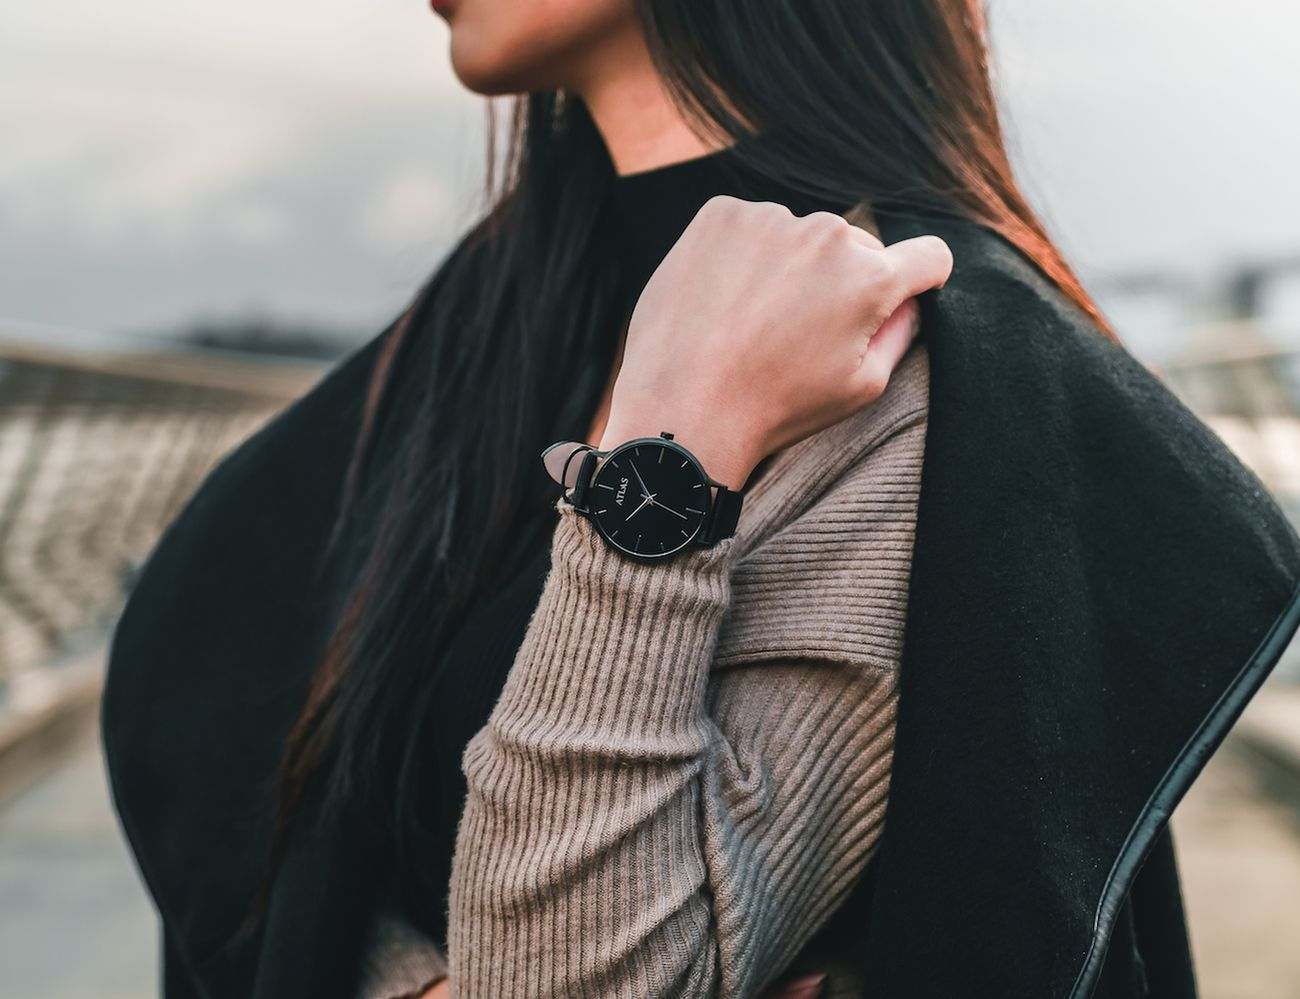 A New Generation of Contemporary Watches by WARLD